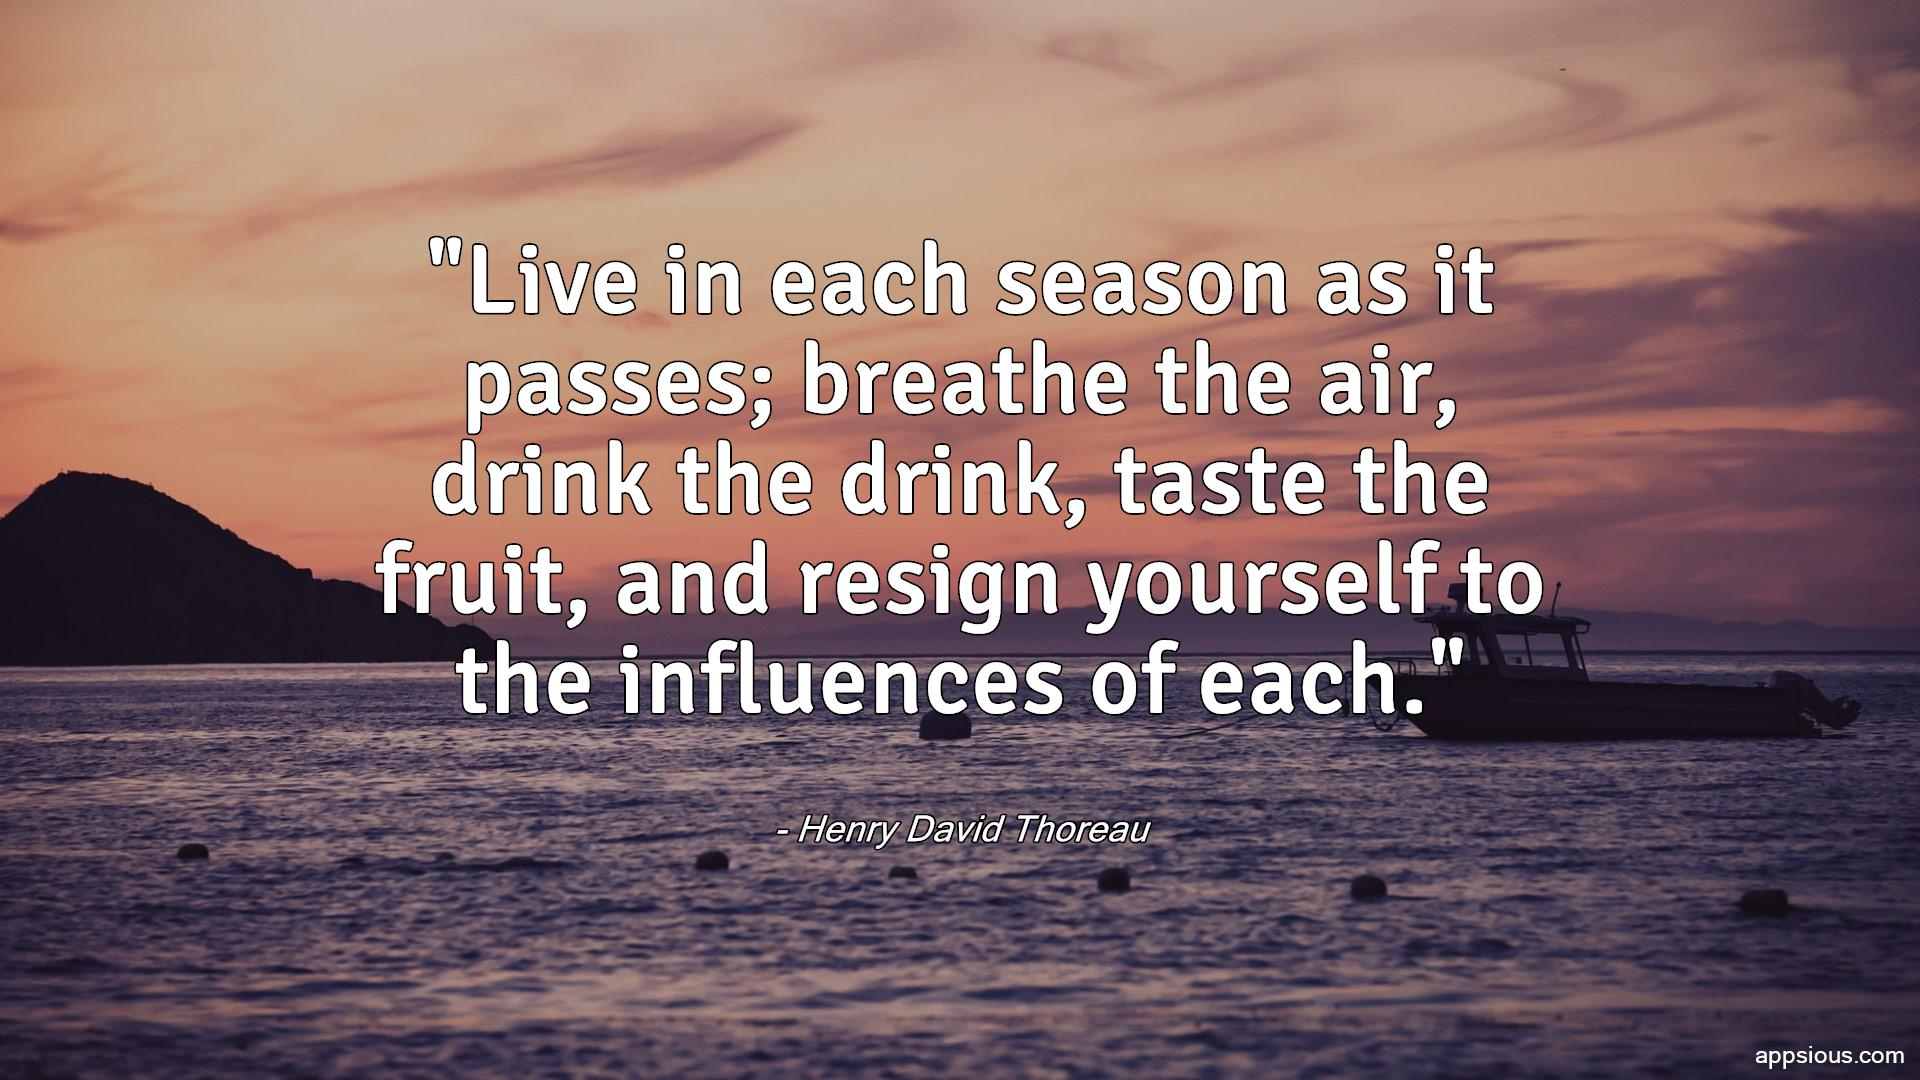 Live in each season as it passes; breathe the air, drink the drink, taste the fruit, and resign yourself to the influences of each.